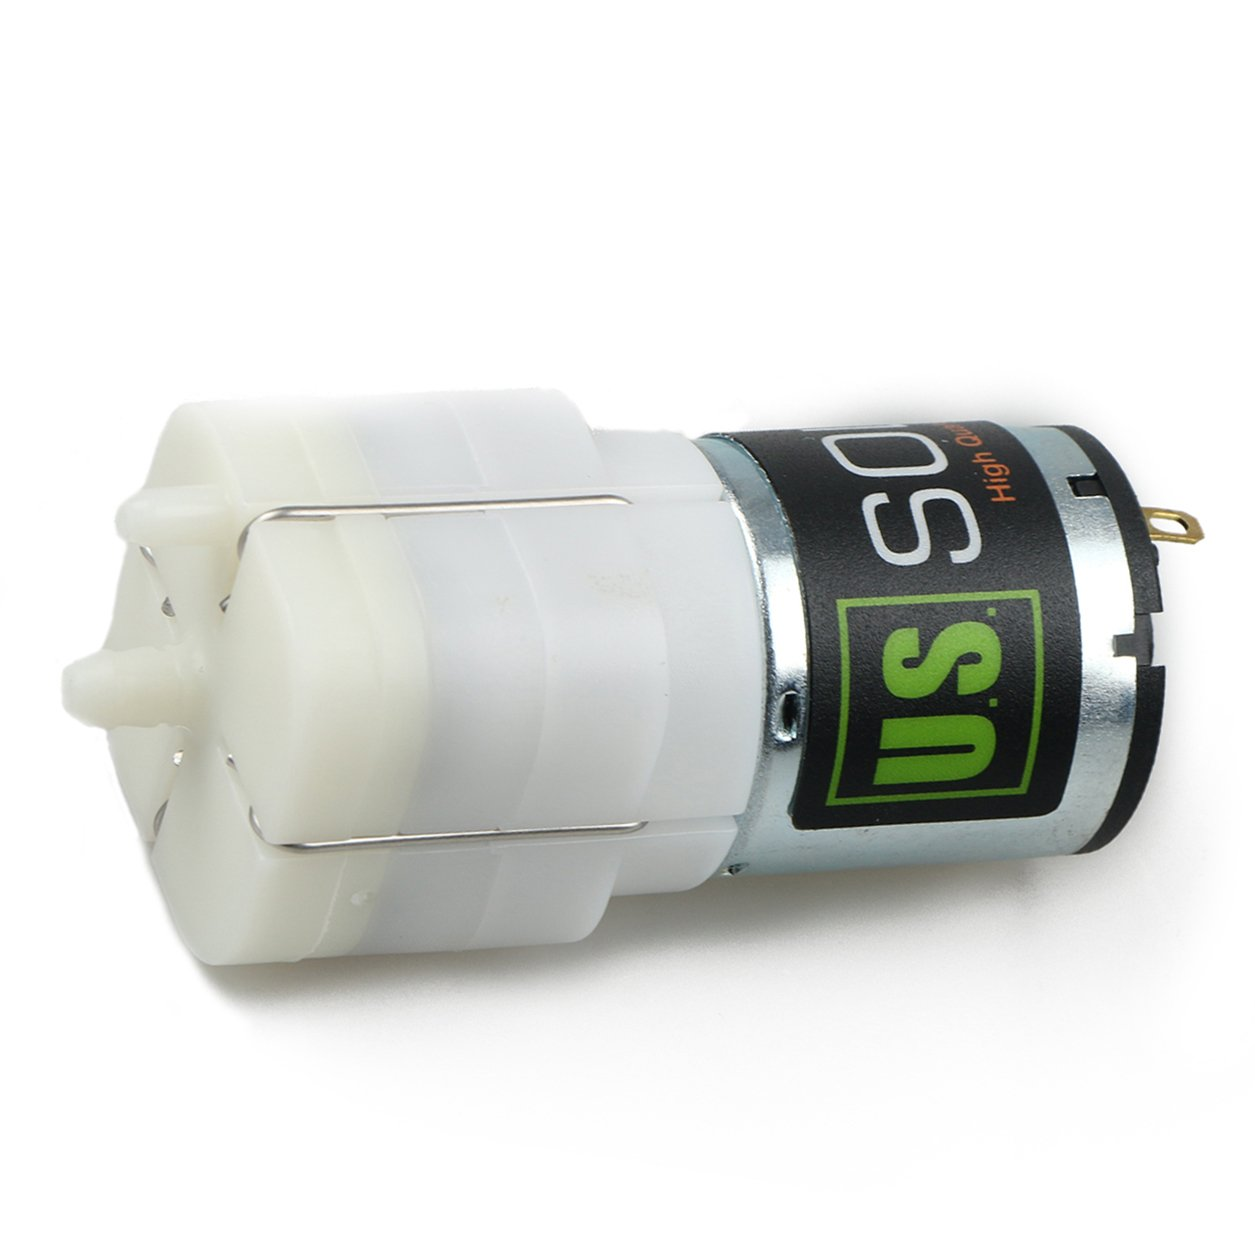 U.S. Solid Micro Air Pump- 12V DC Mini Pump. Easy fix for Home Appliances, Massage Chairs, Aquariums or Ponds, Terrariums, Blood Pressure Monitors, and other Medical Equipment